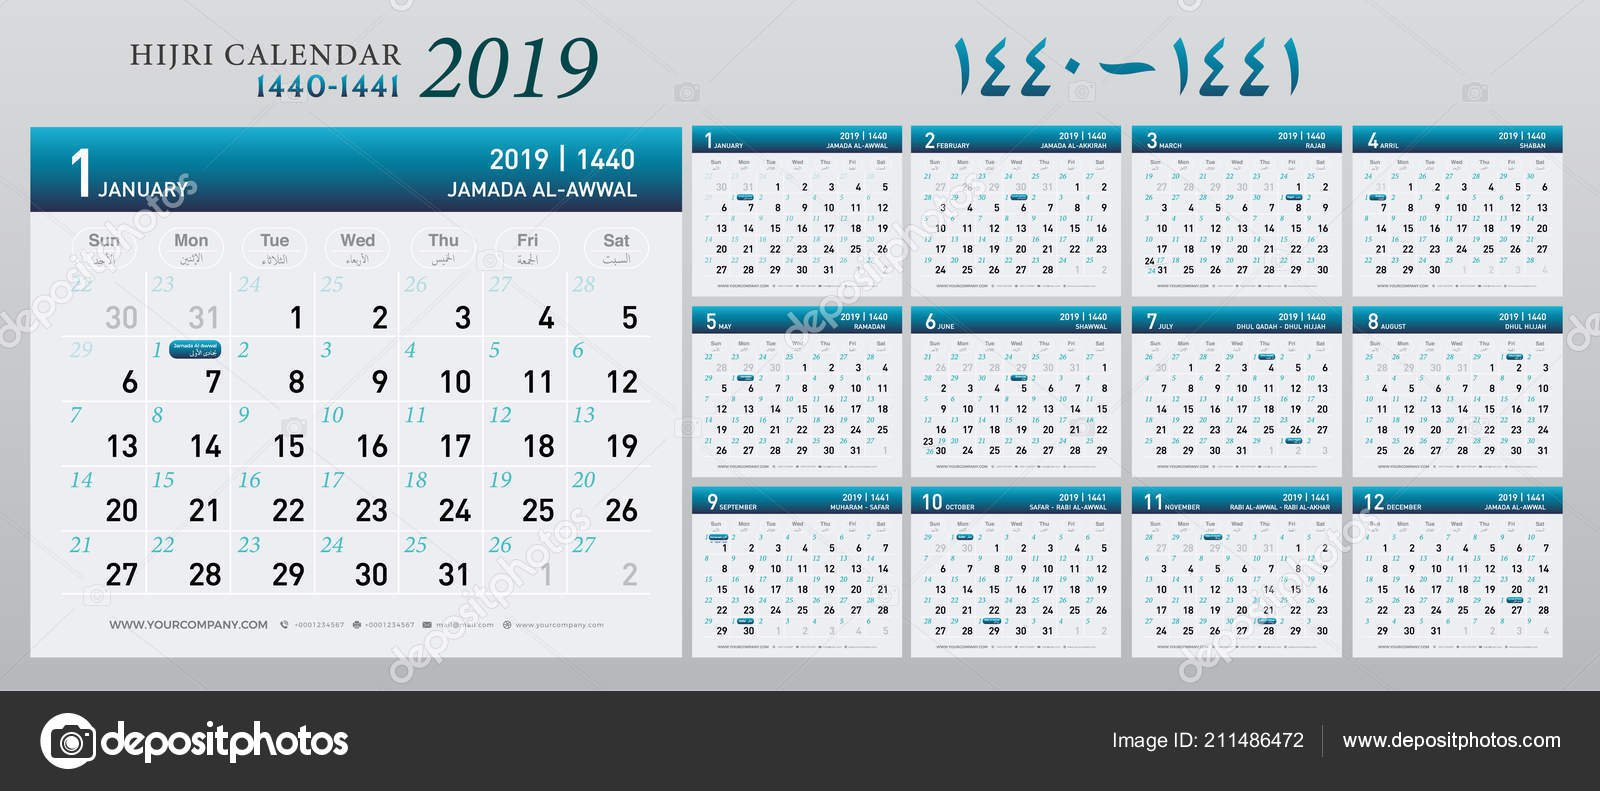 Calendar 2019 Hijri 1440 1441 Islamic Template Simple Minimal Wall Calendar 2019 Hijri